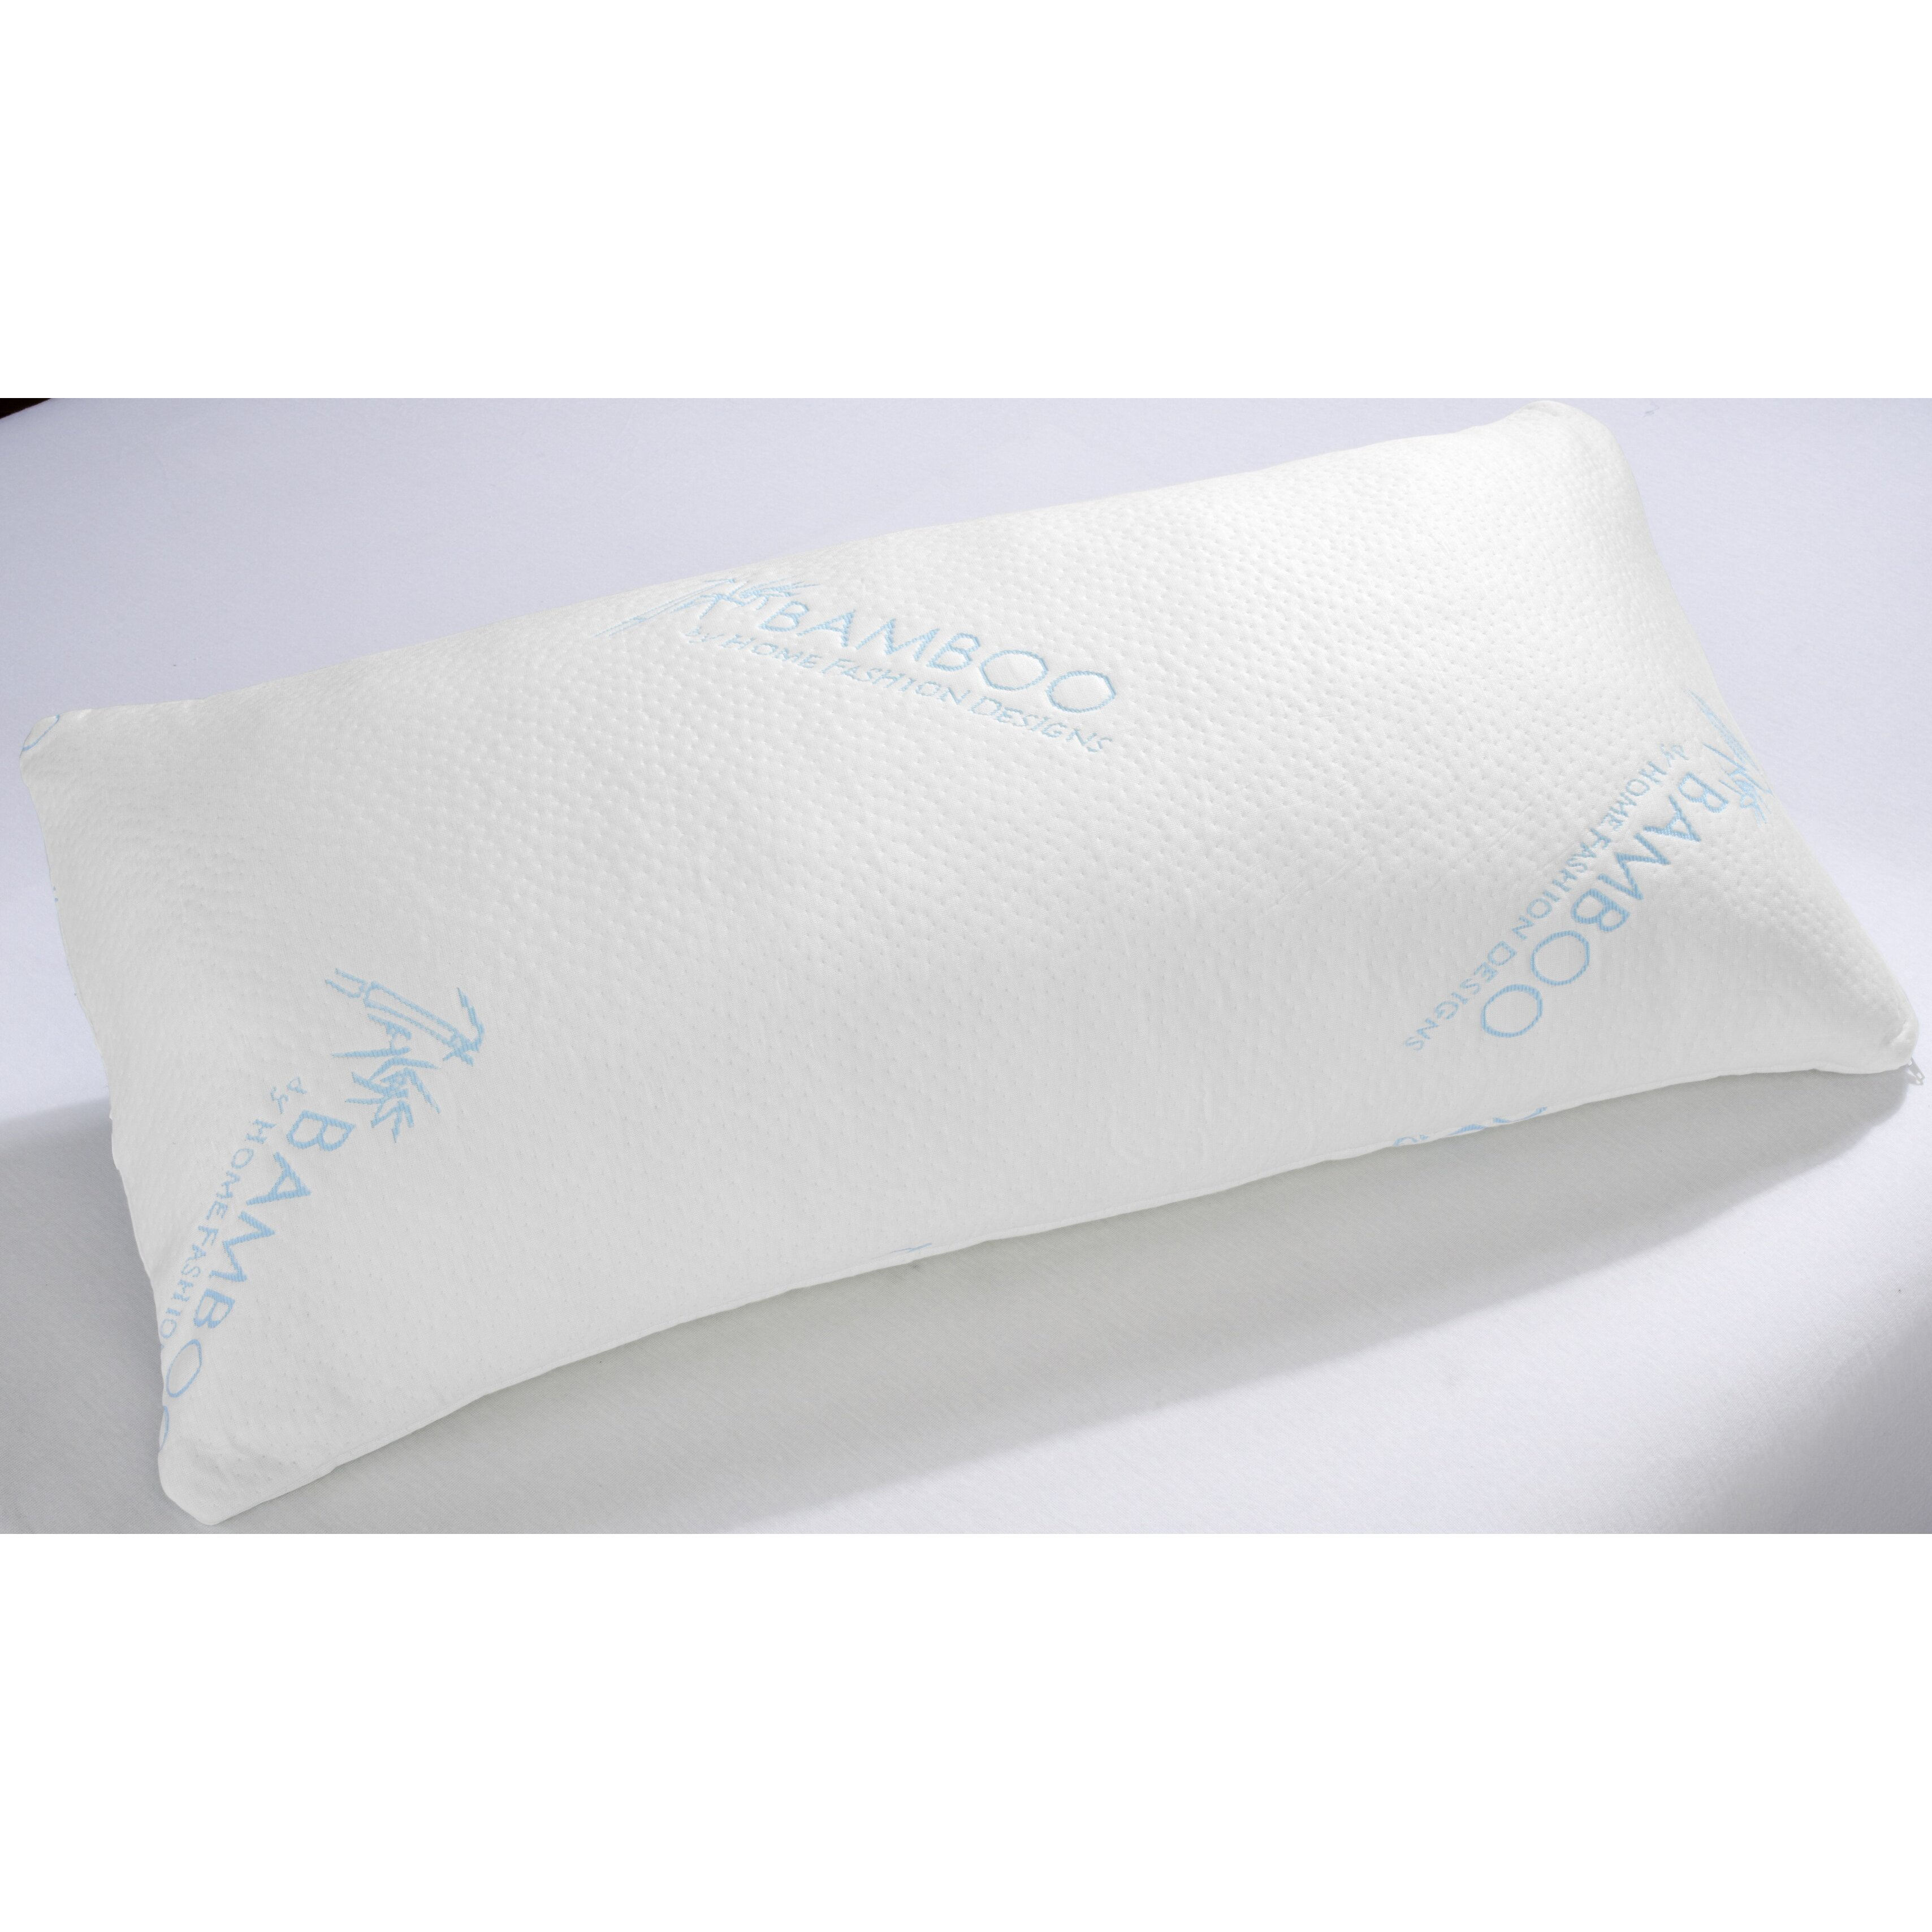 Home fashion design shredded memory foam pillow reviews for Bed pillows reviews